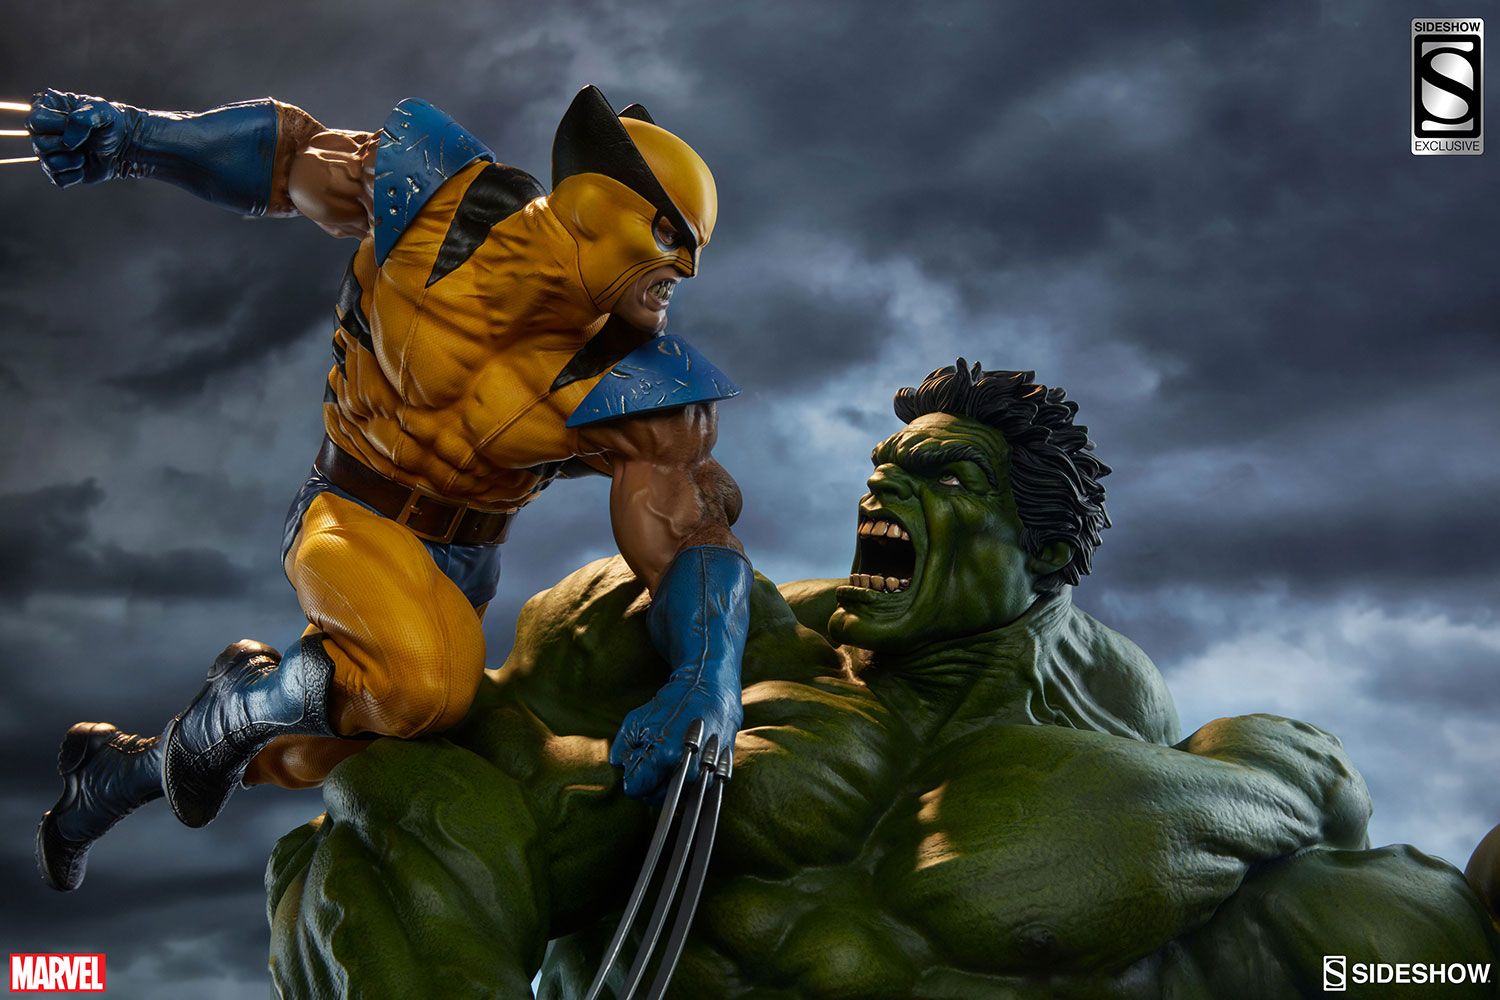 S 3d Wallpaper Hd Marvel Hulk And Wolverine Maquette By Sideshow